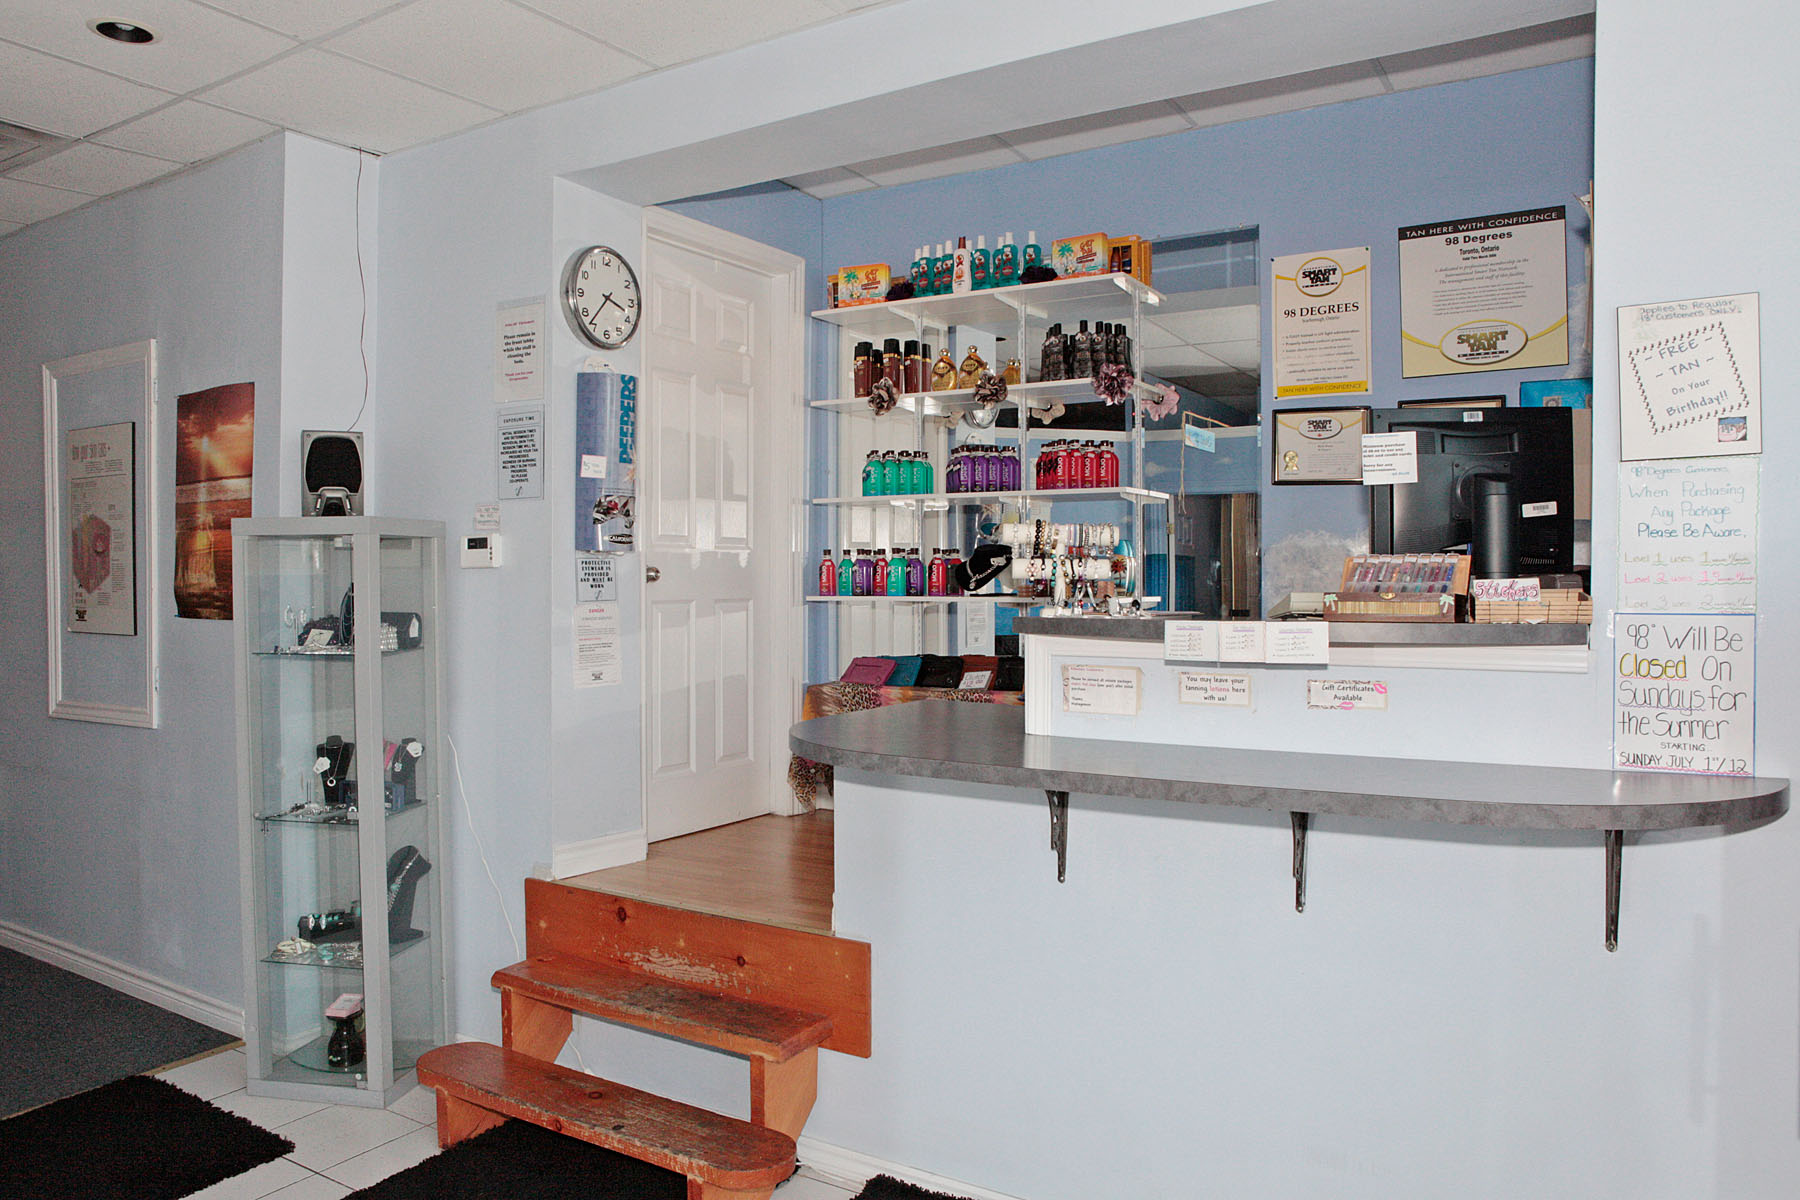 98 degrees tanning salon official virtual tour seevirtual for 98 degrees tanning salon scarborough